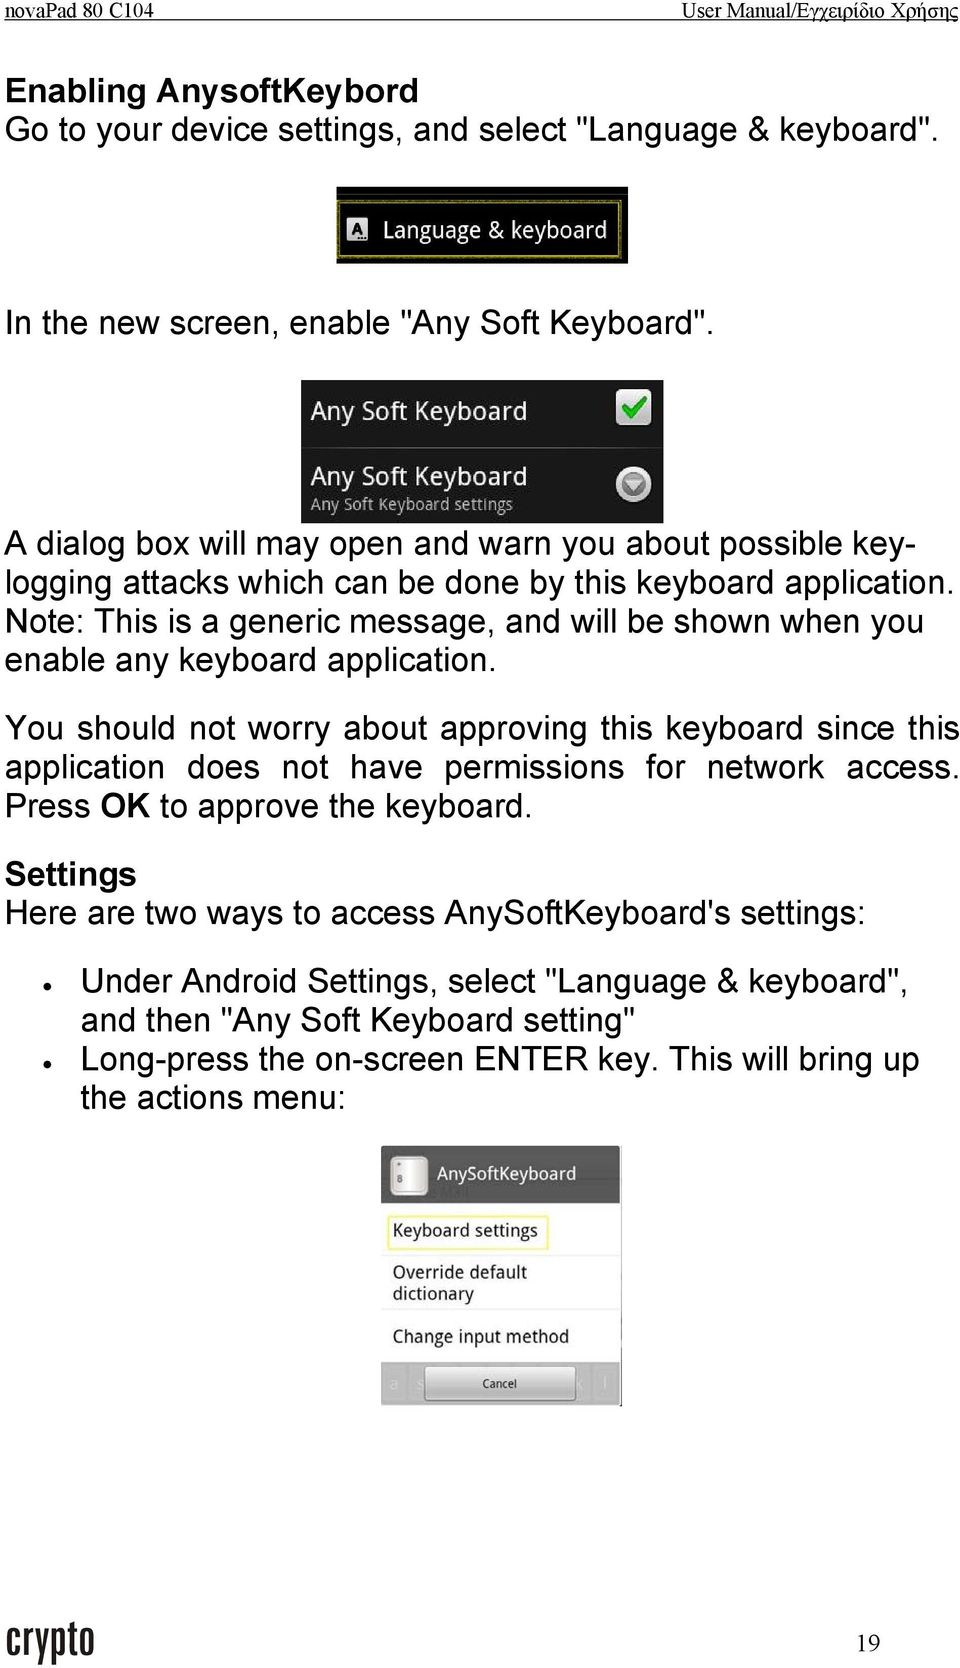 Note: This is a generic message, and will be shown when you enable any keyboard application.